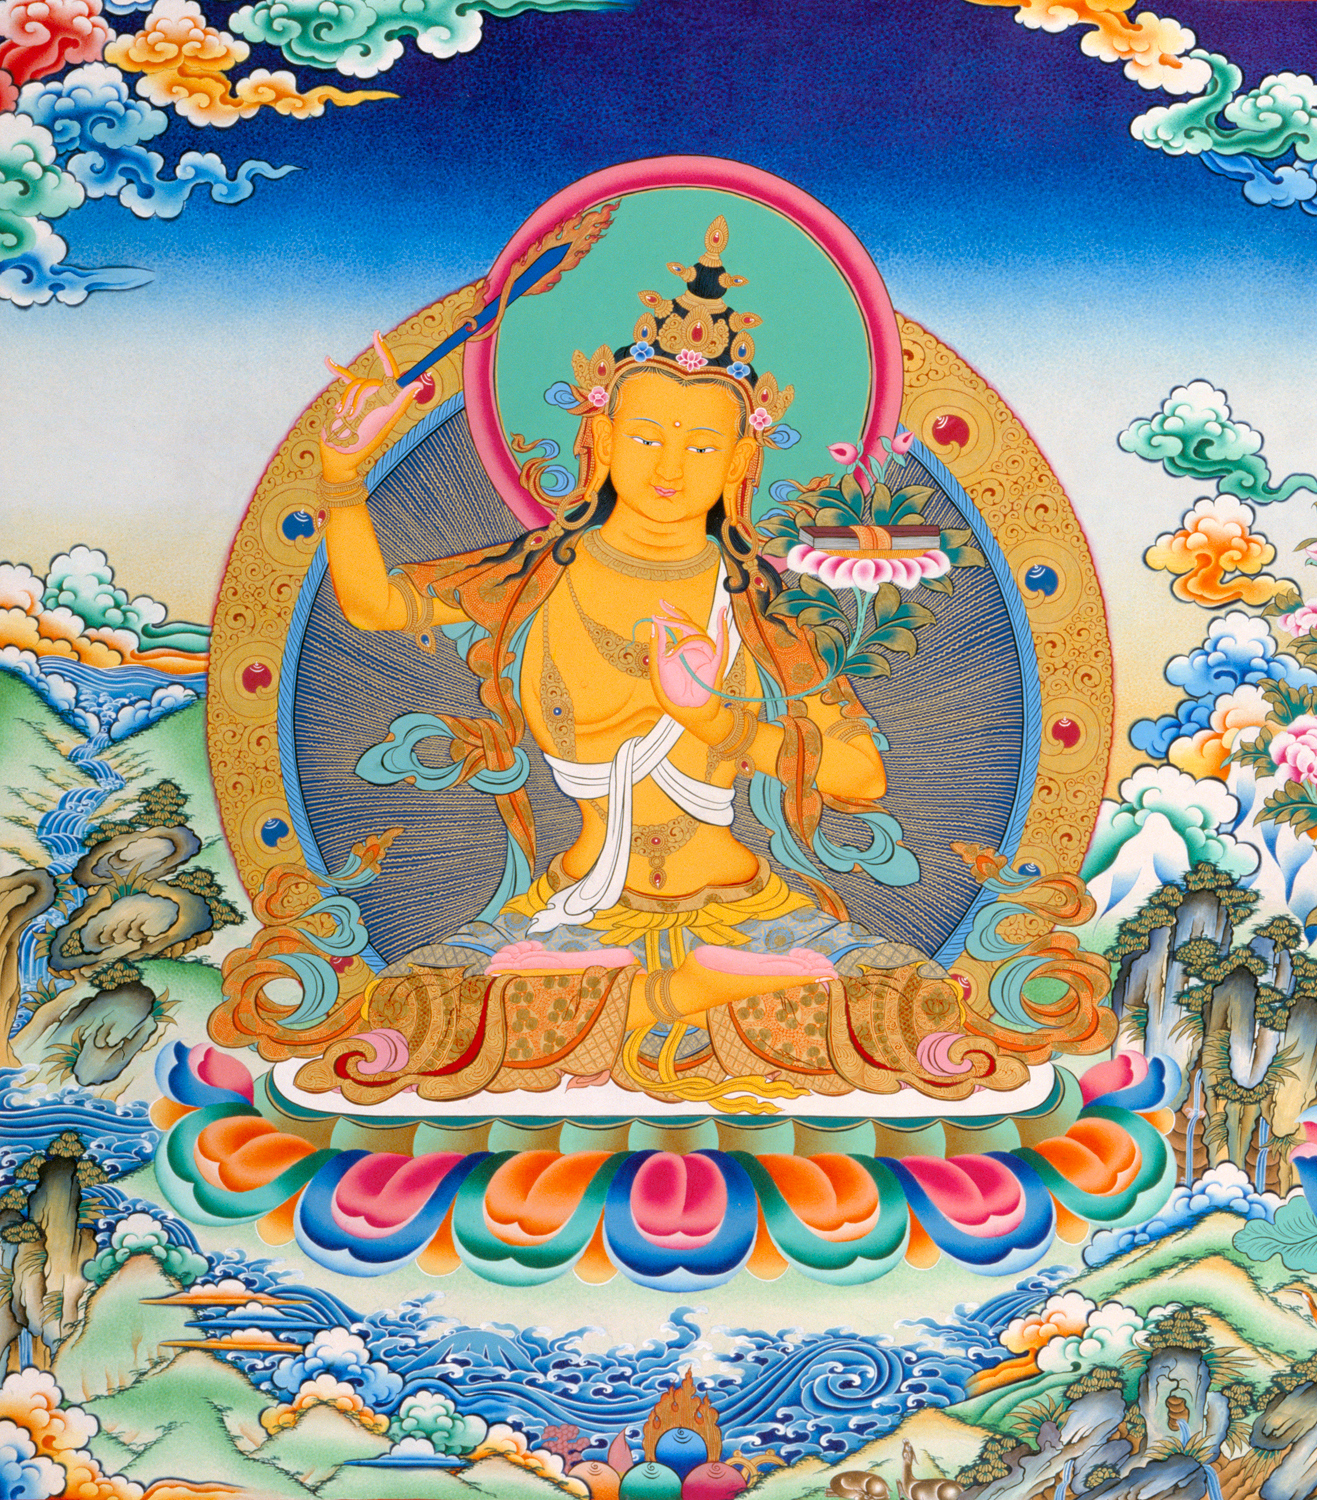 Lord Manjushri, the Buddha of wisdom. Click to enlarge.